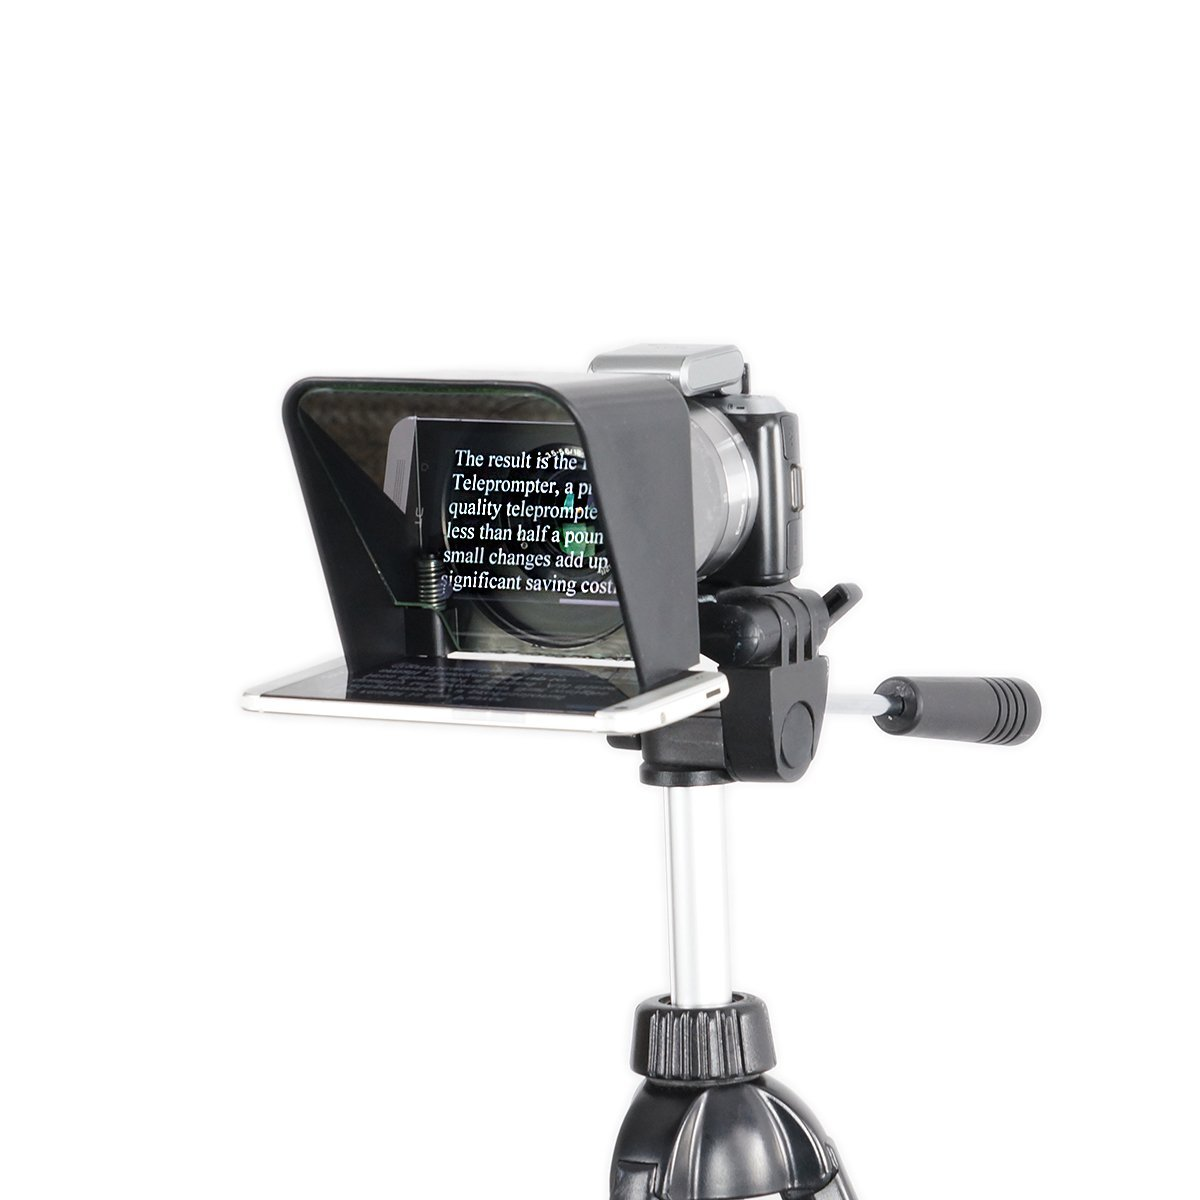 Parrot Teleprompter, The Worlds Most Portable And Affordable Teleprompter by Parrot